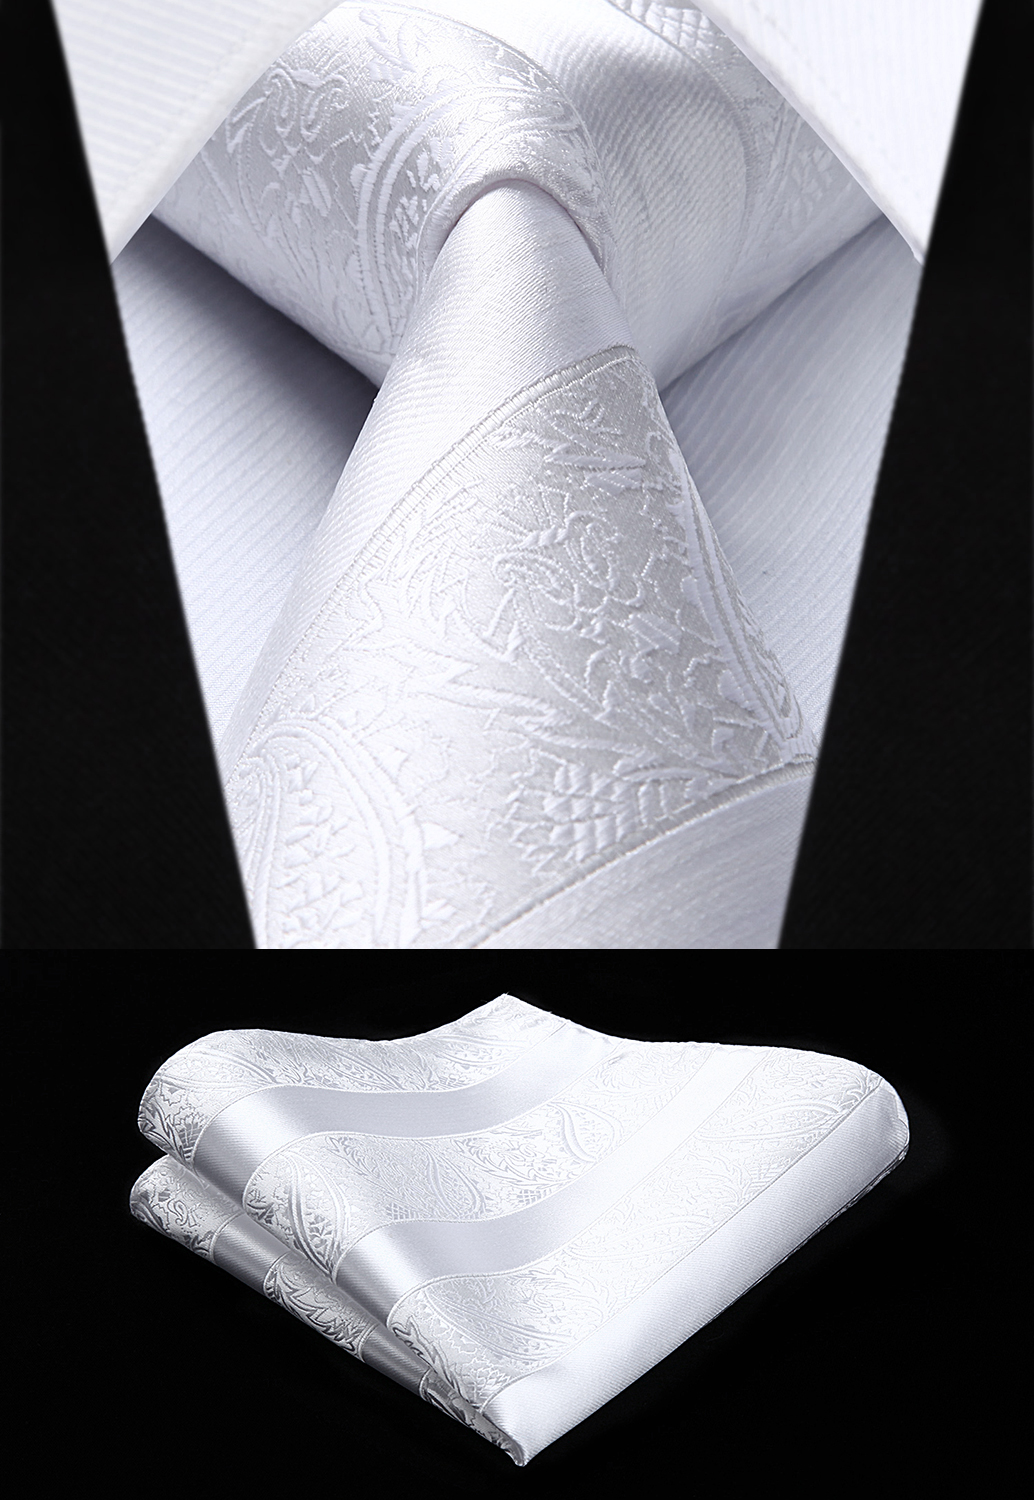 Woven Men White Tie Paisley Necktie Handkerchief Set#TP804W8S Party Wedding Classic Fashion Pocket Square Tie